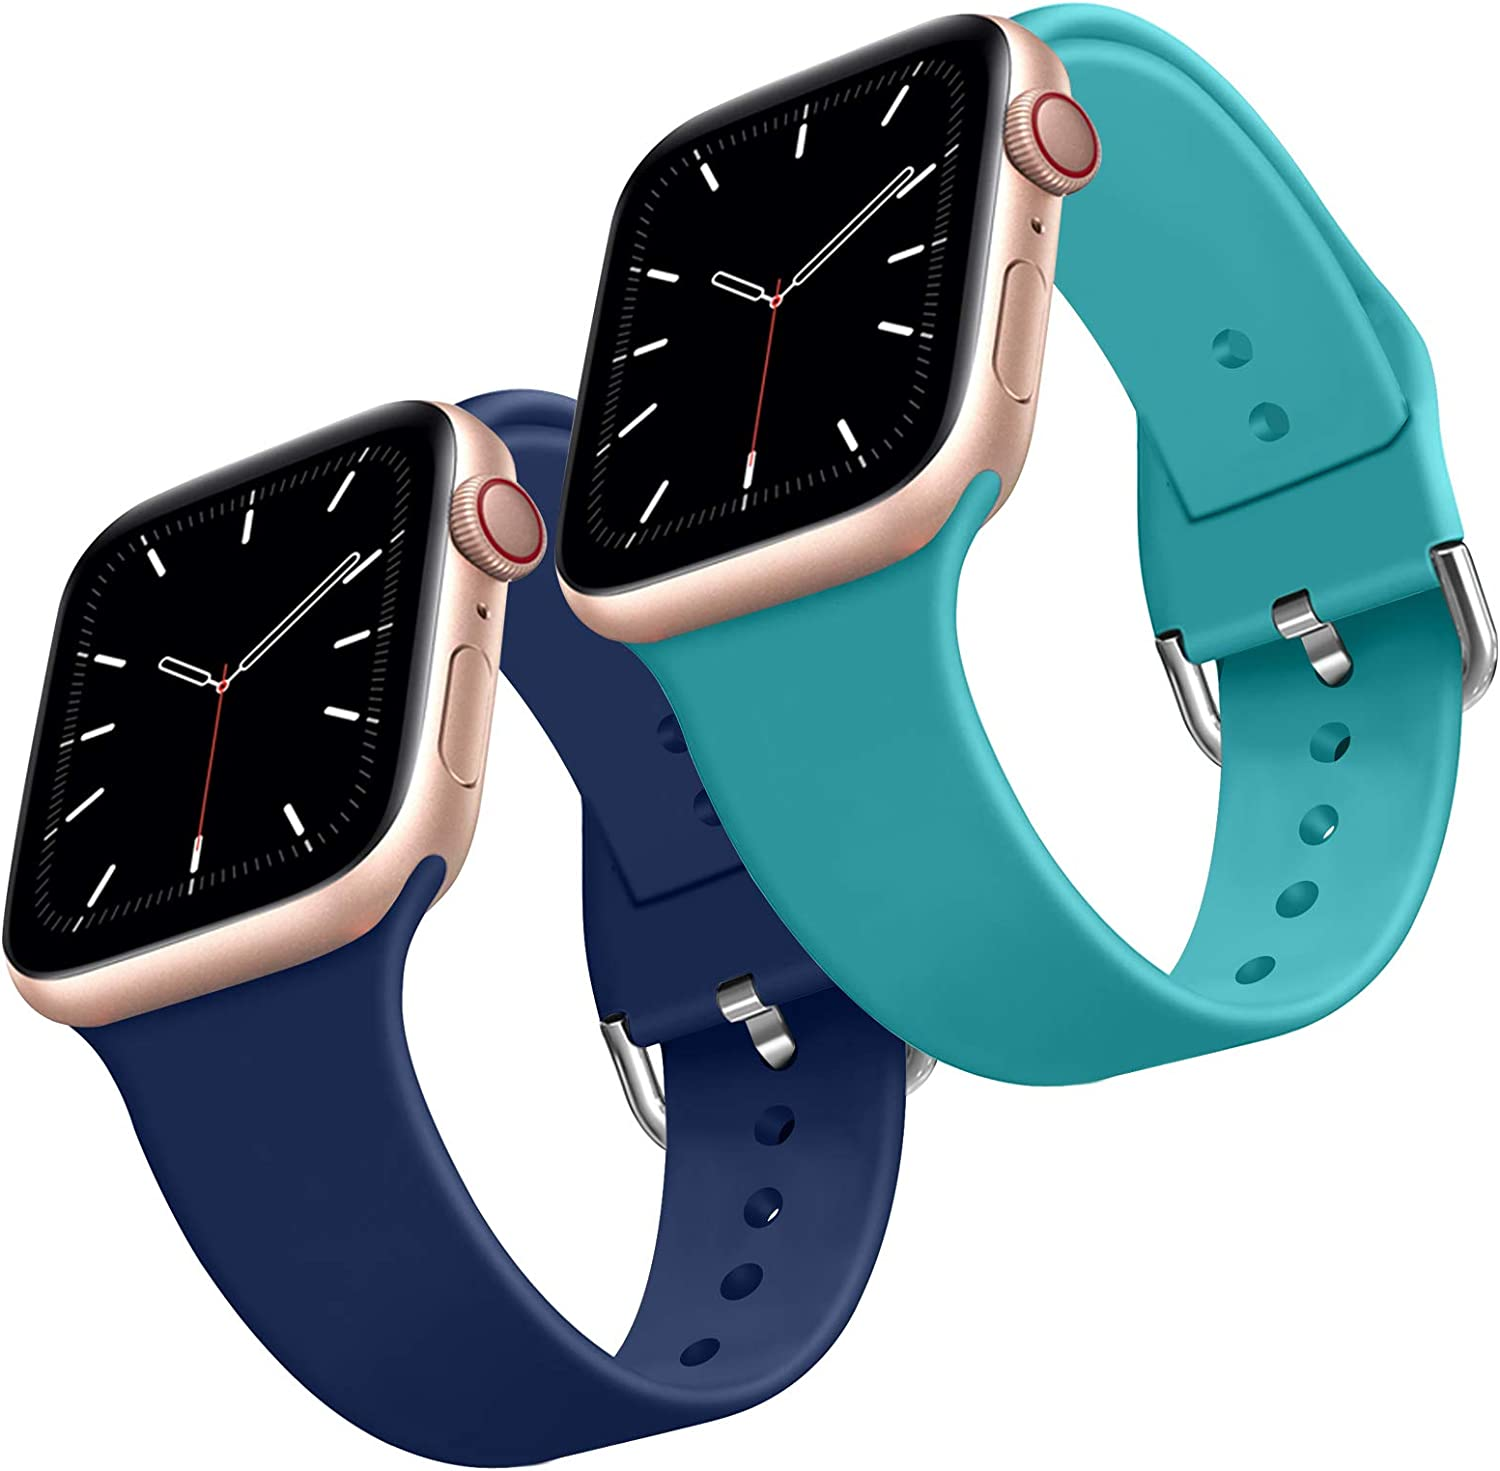 2 Pack Soft Silicone Sport Band Replacement Wrist Strap for Apple Watch Band 44mm 42mm, Compatible for iWatch Series 6/SE/5/4/3/2/1